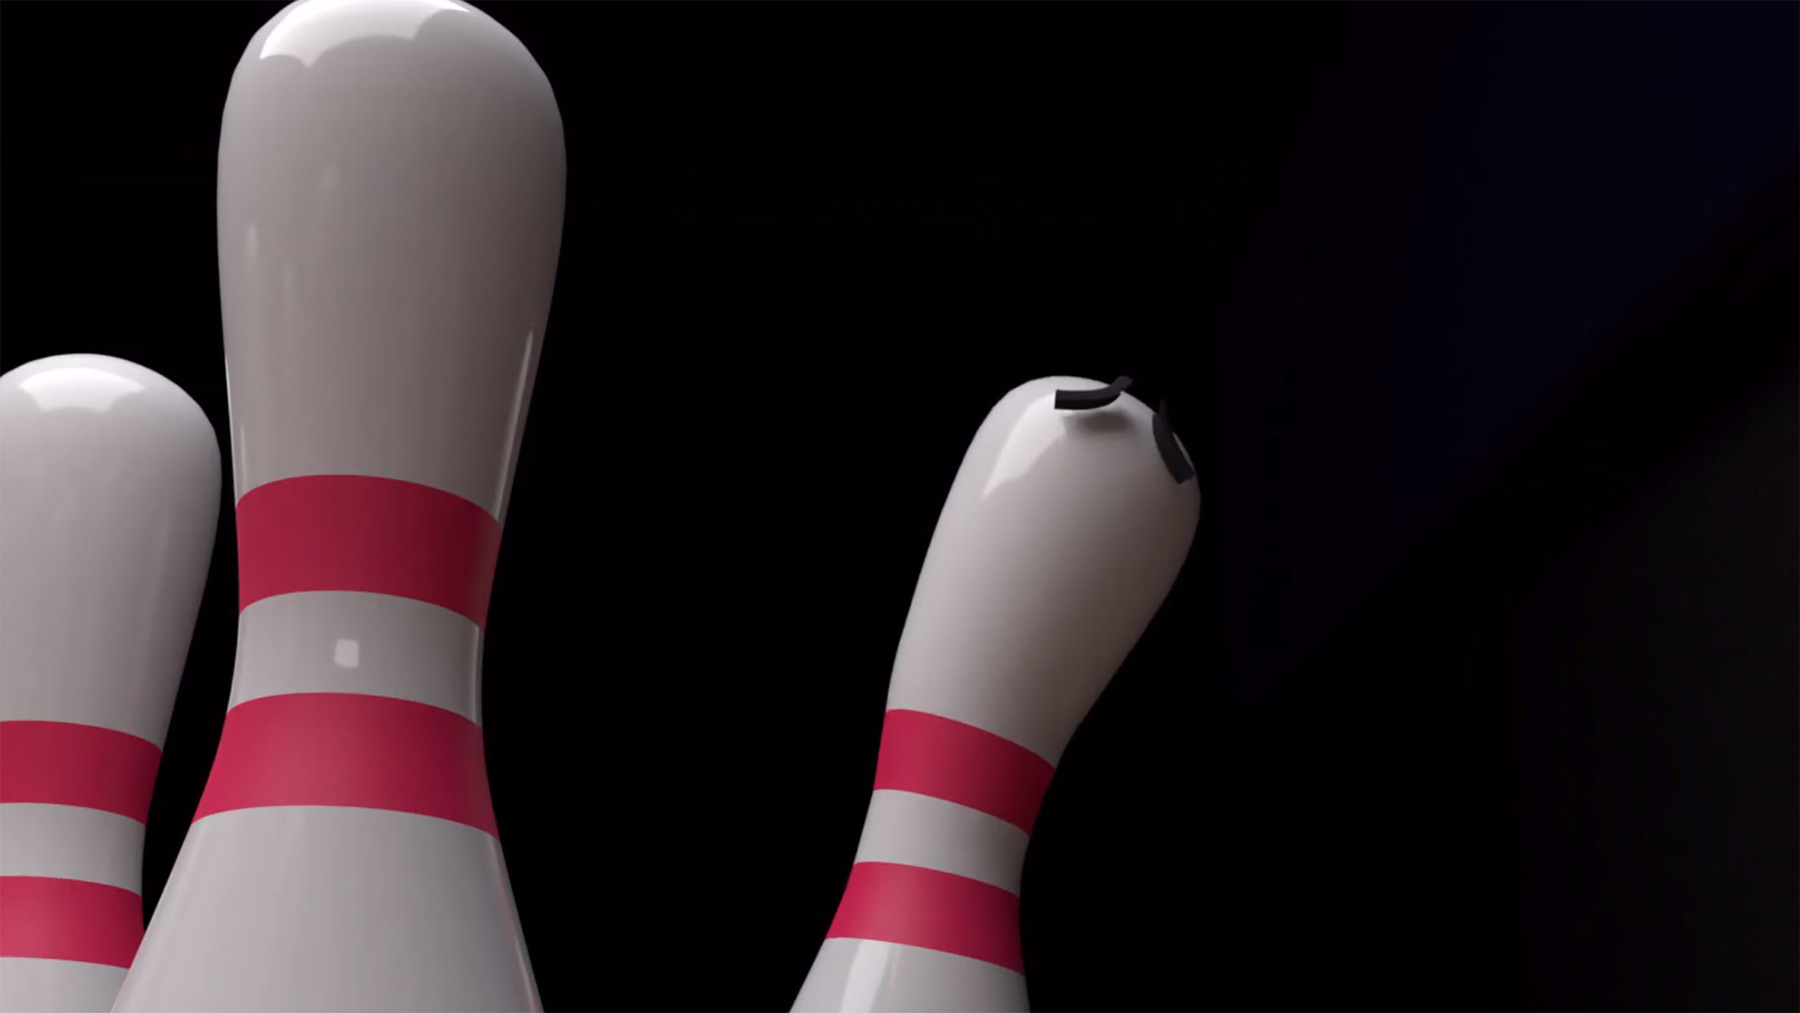 Strike-Animation beim Bowling aus der Sicht des Pins The-Bowling-Alley-Screen-When-You-Get-A-Strike